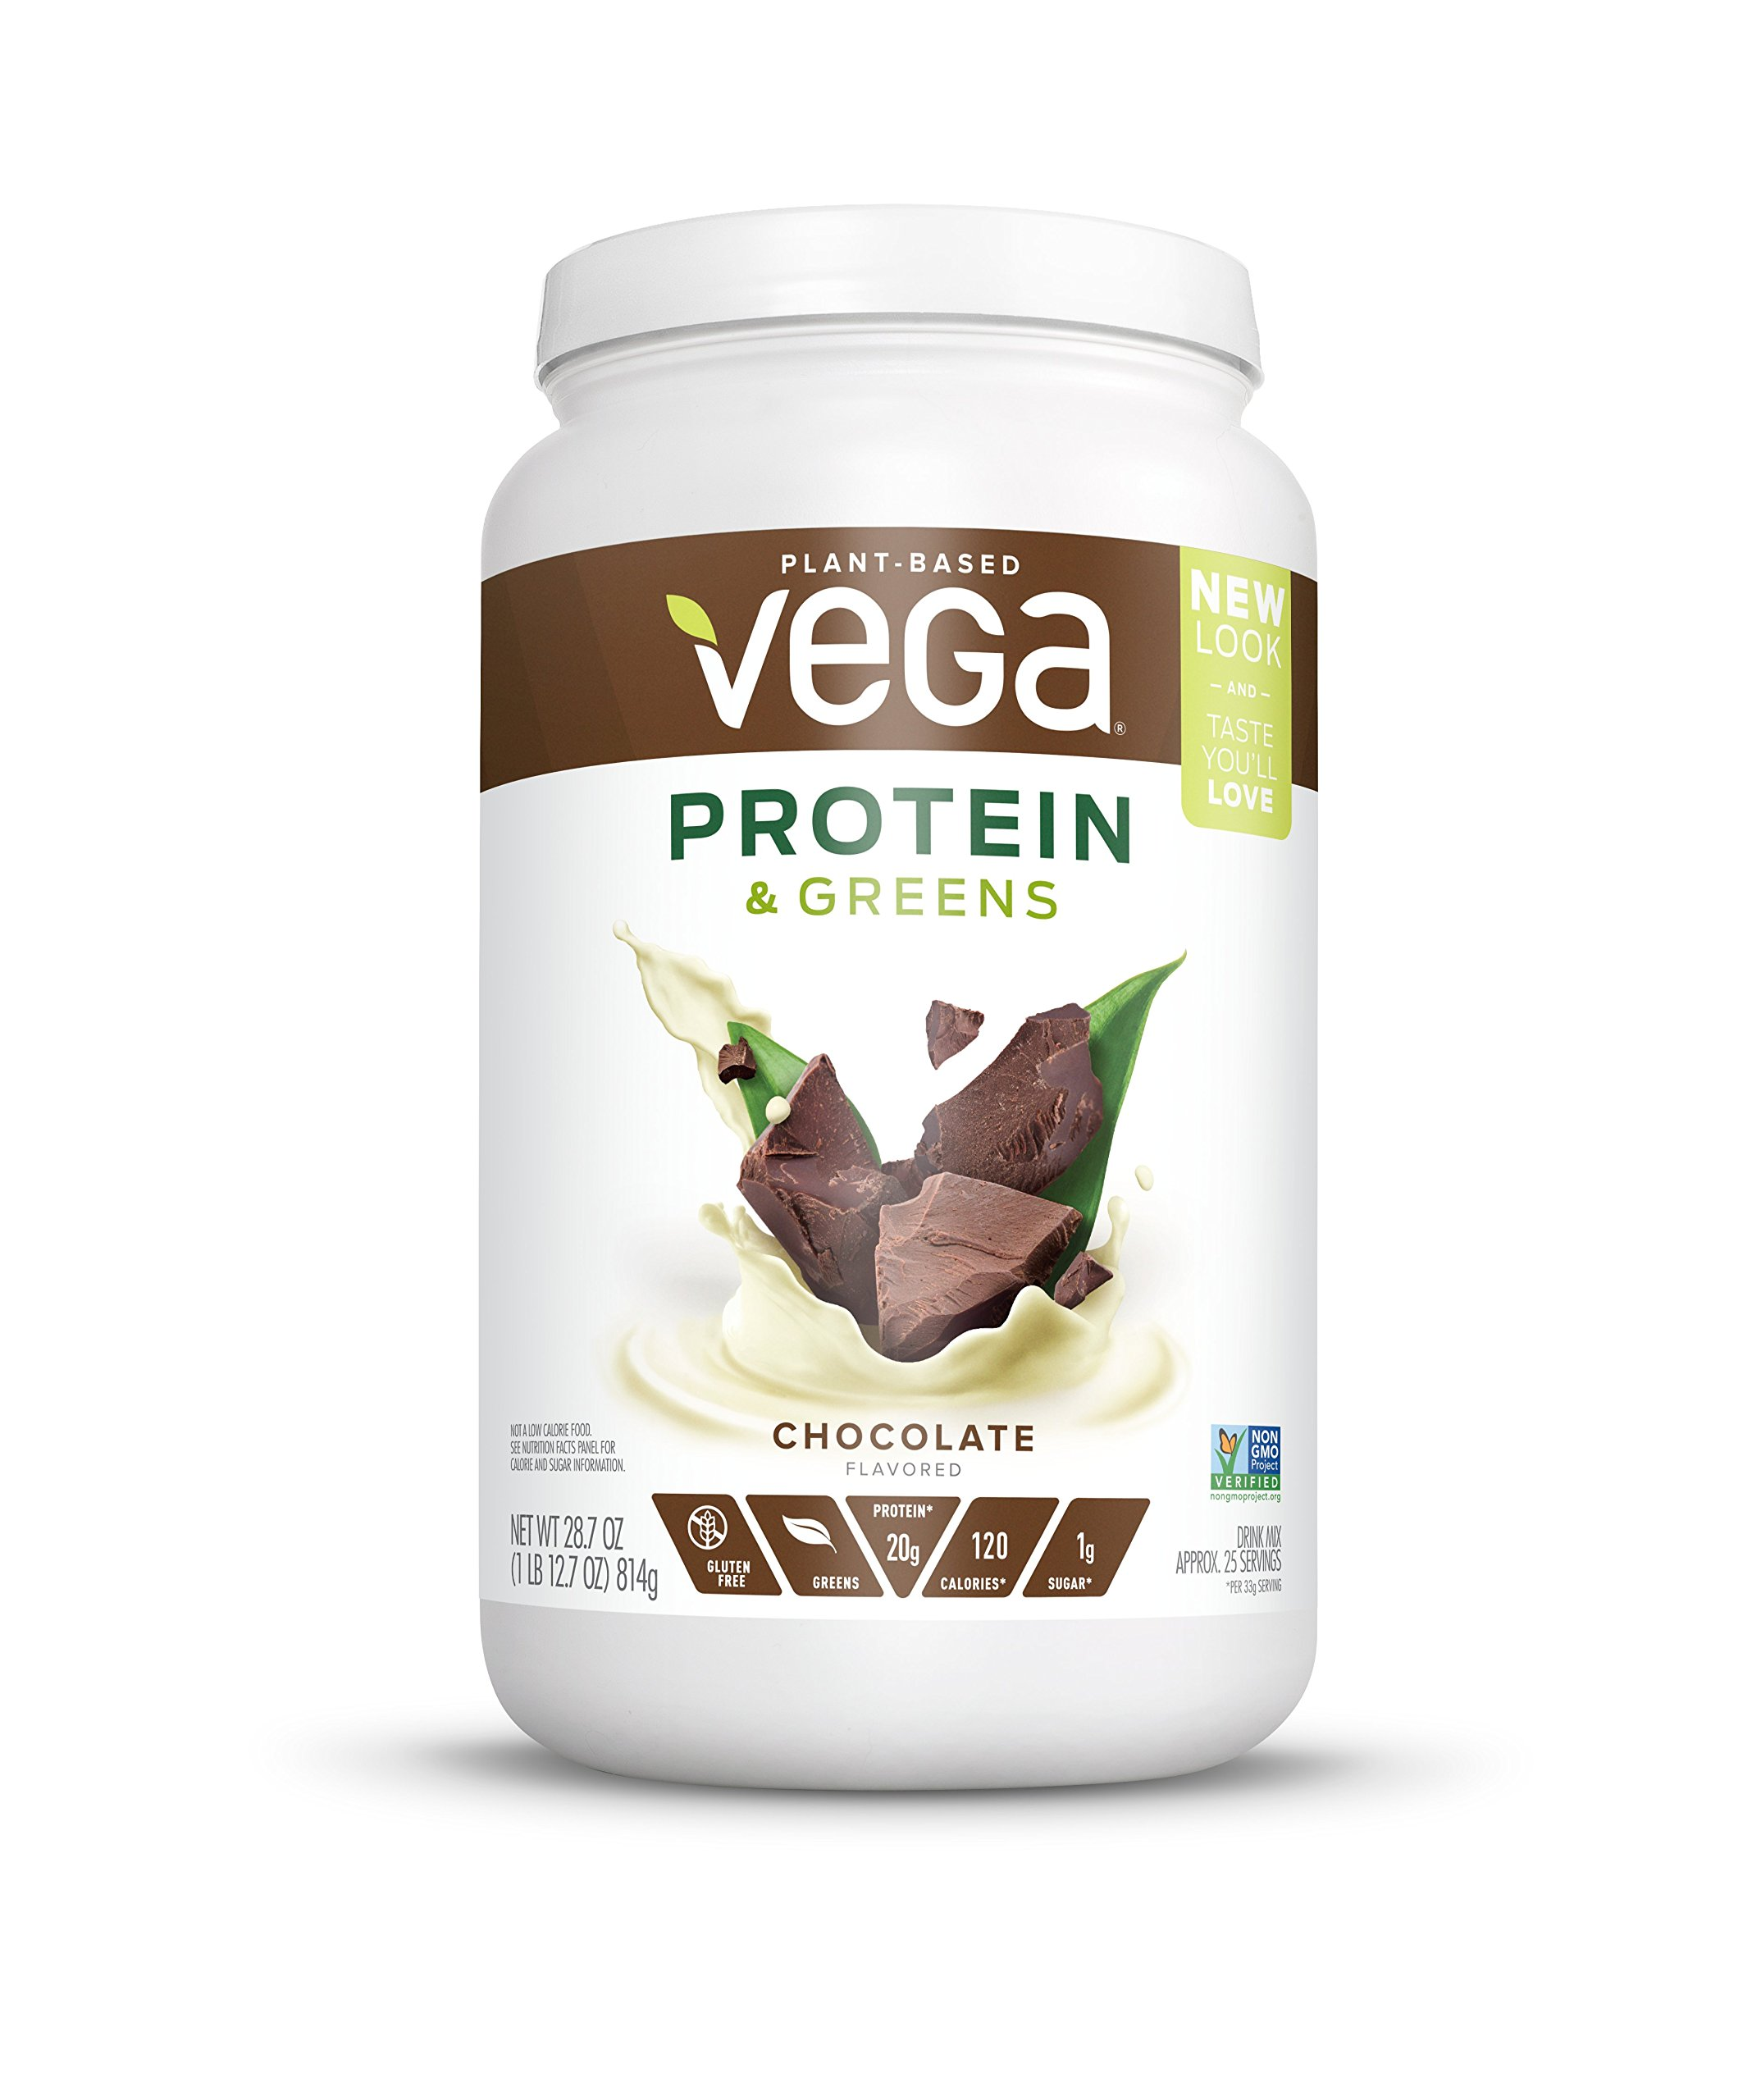 Vega Protein & Greens, Plant Protein Shake, Chocolate, 25 Servings, 1.79 lb tub